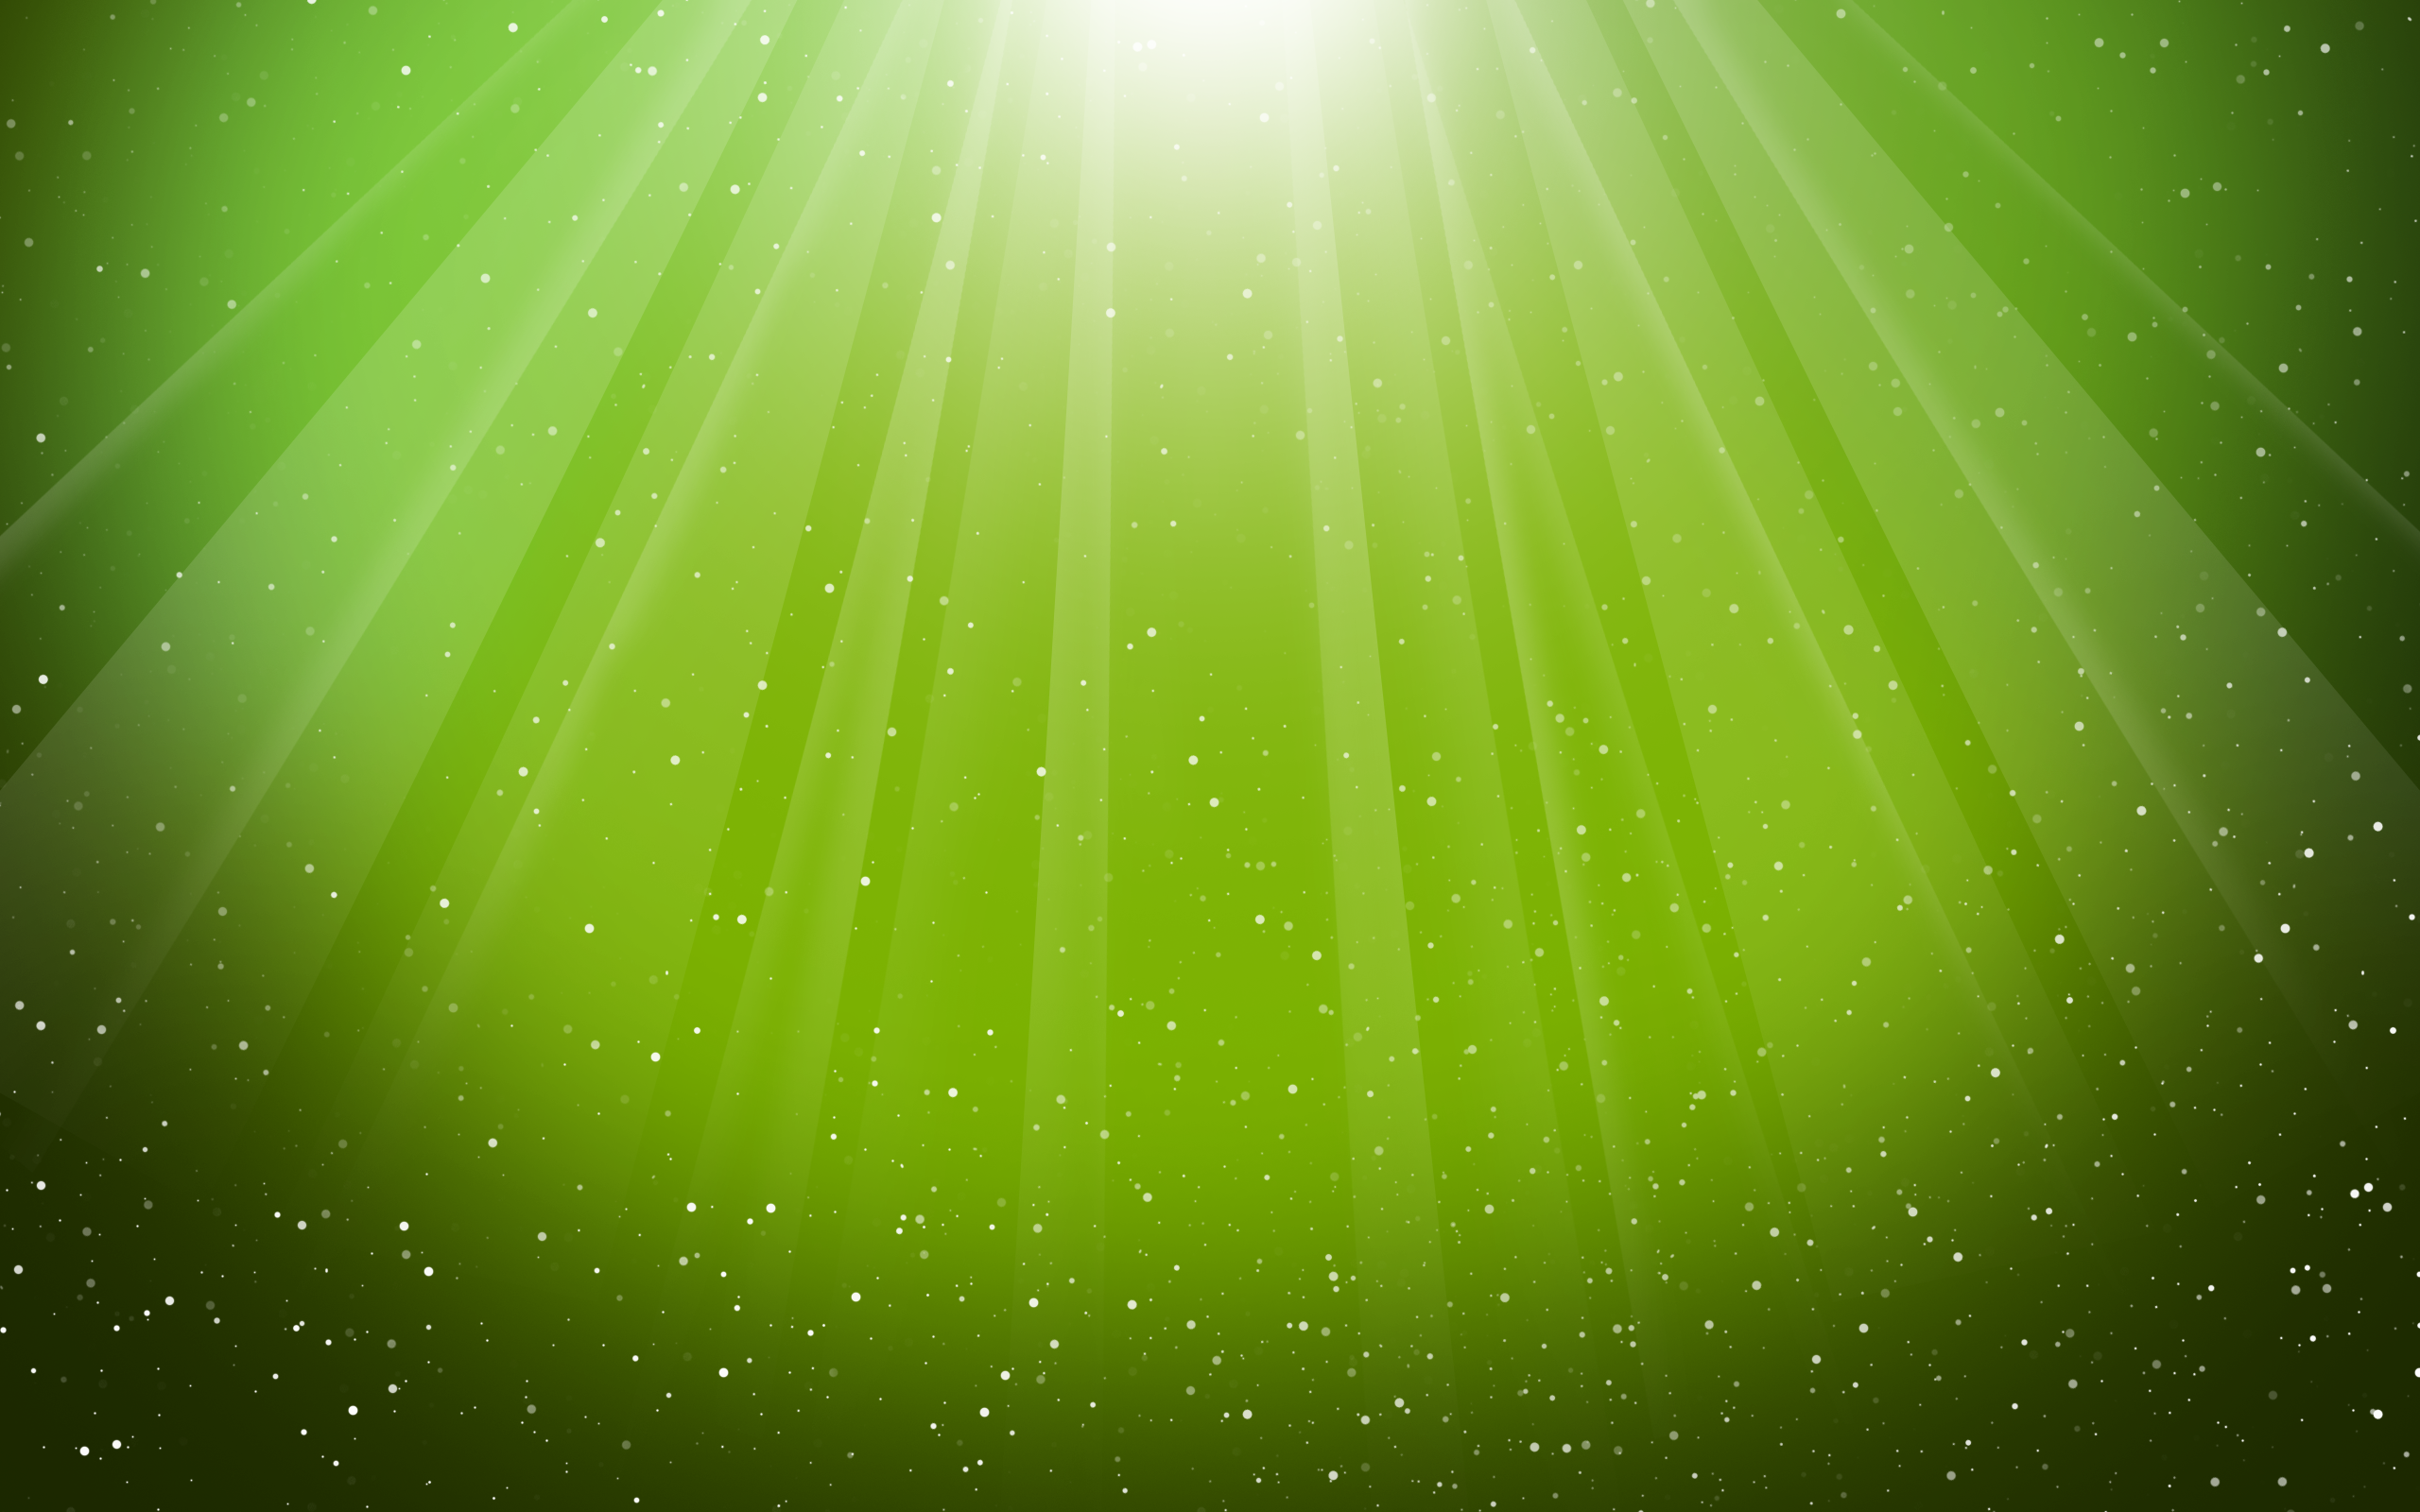 39282537 Green Full HD Quality Wallpapers - 2560x1600